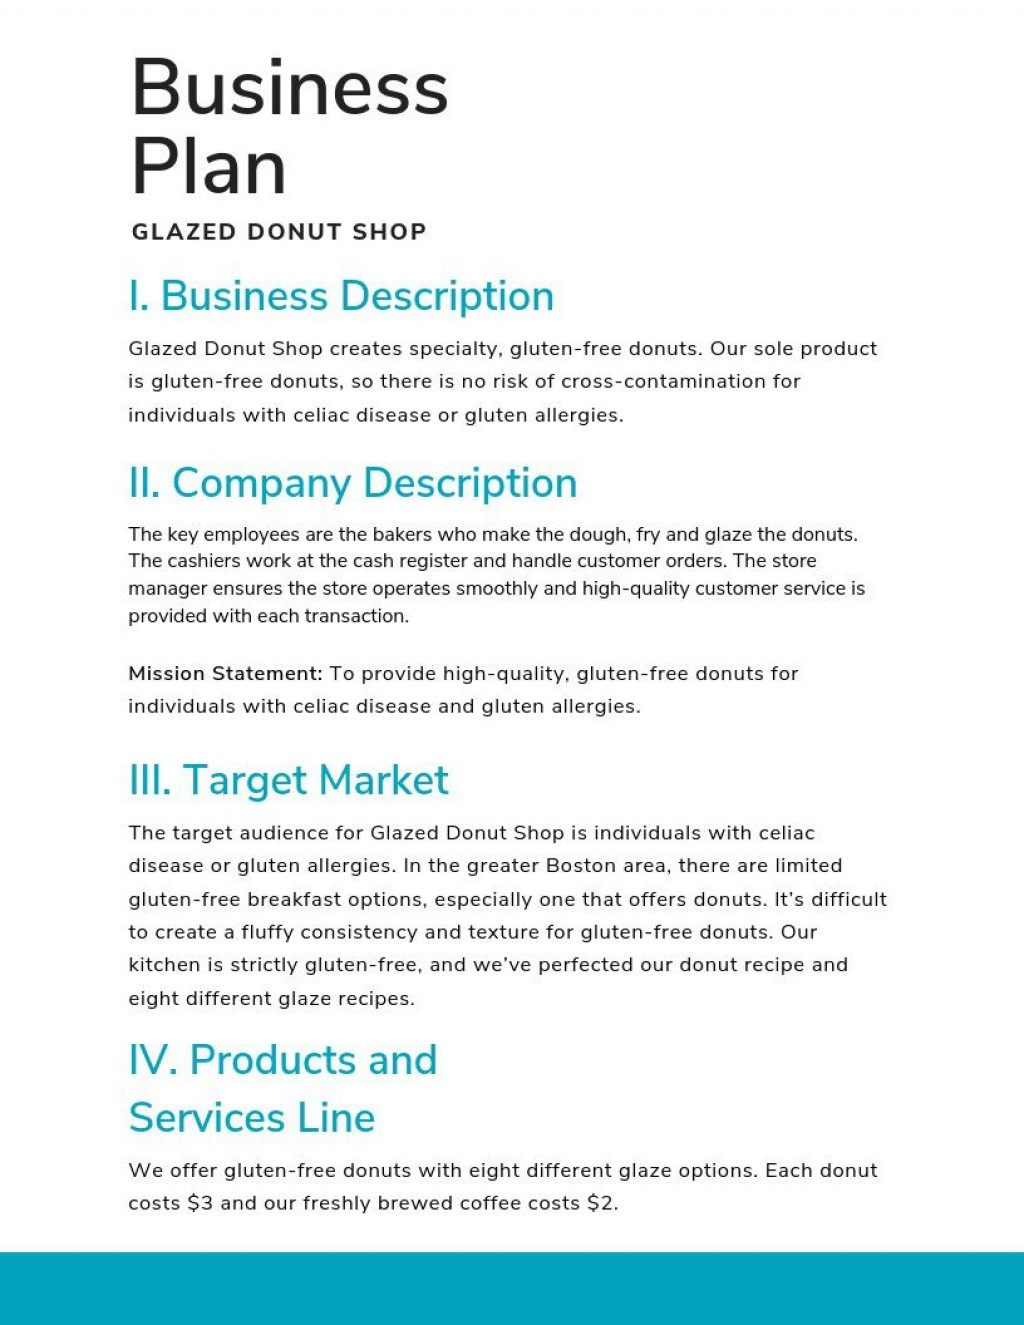 005 Impressive Startup Busines Plan Template High Resolution  Free Download DocLarge